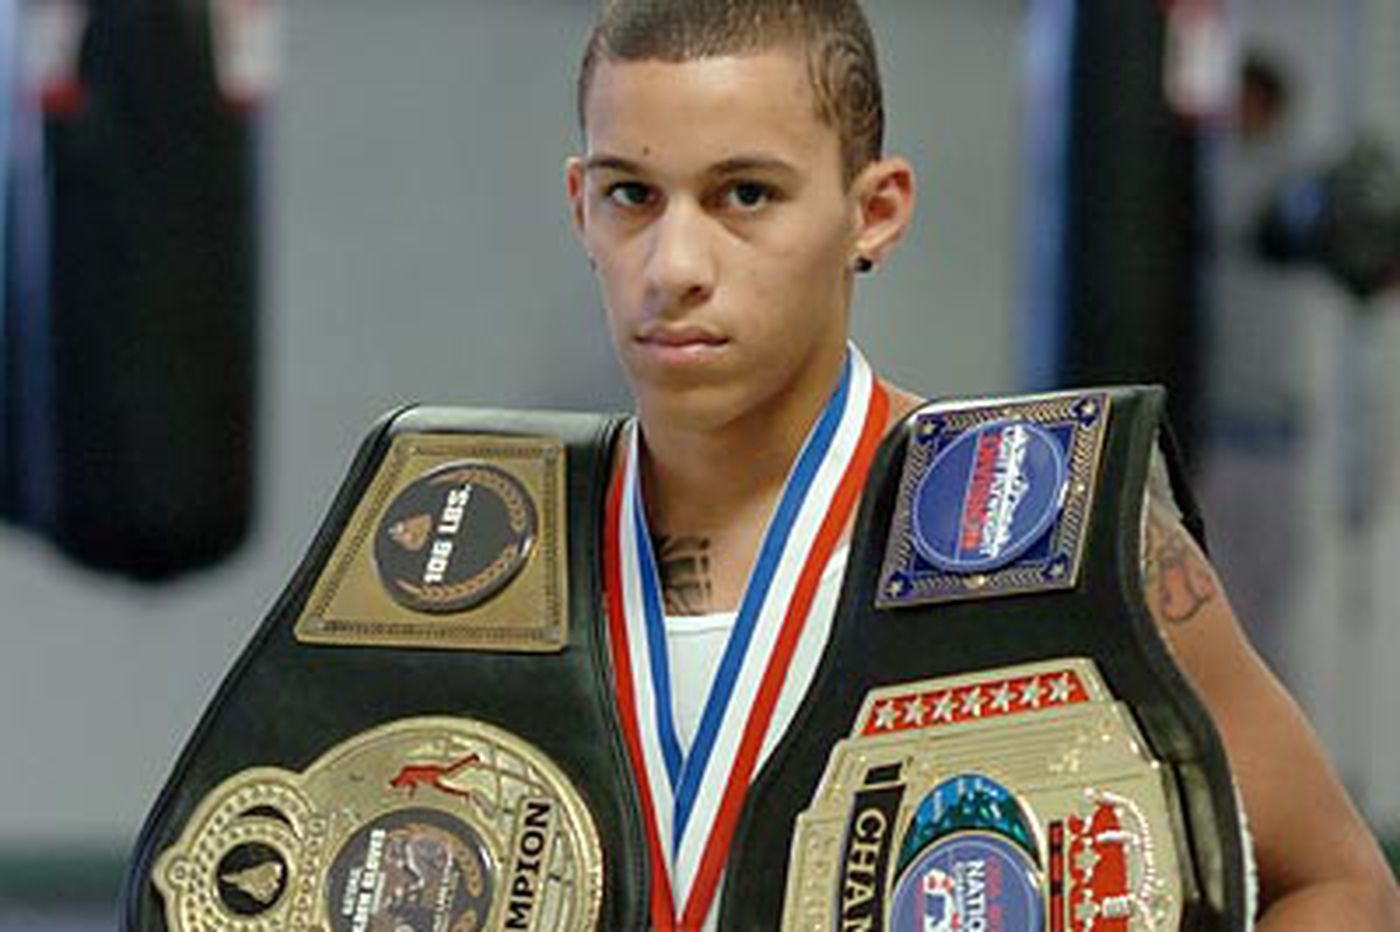 Philly boxer is U.S. champ at 16 with bright future